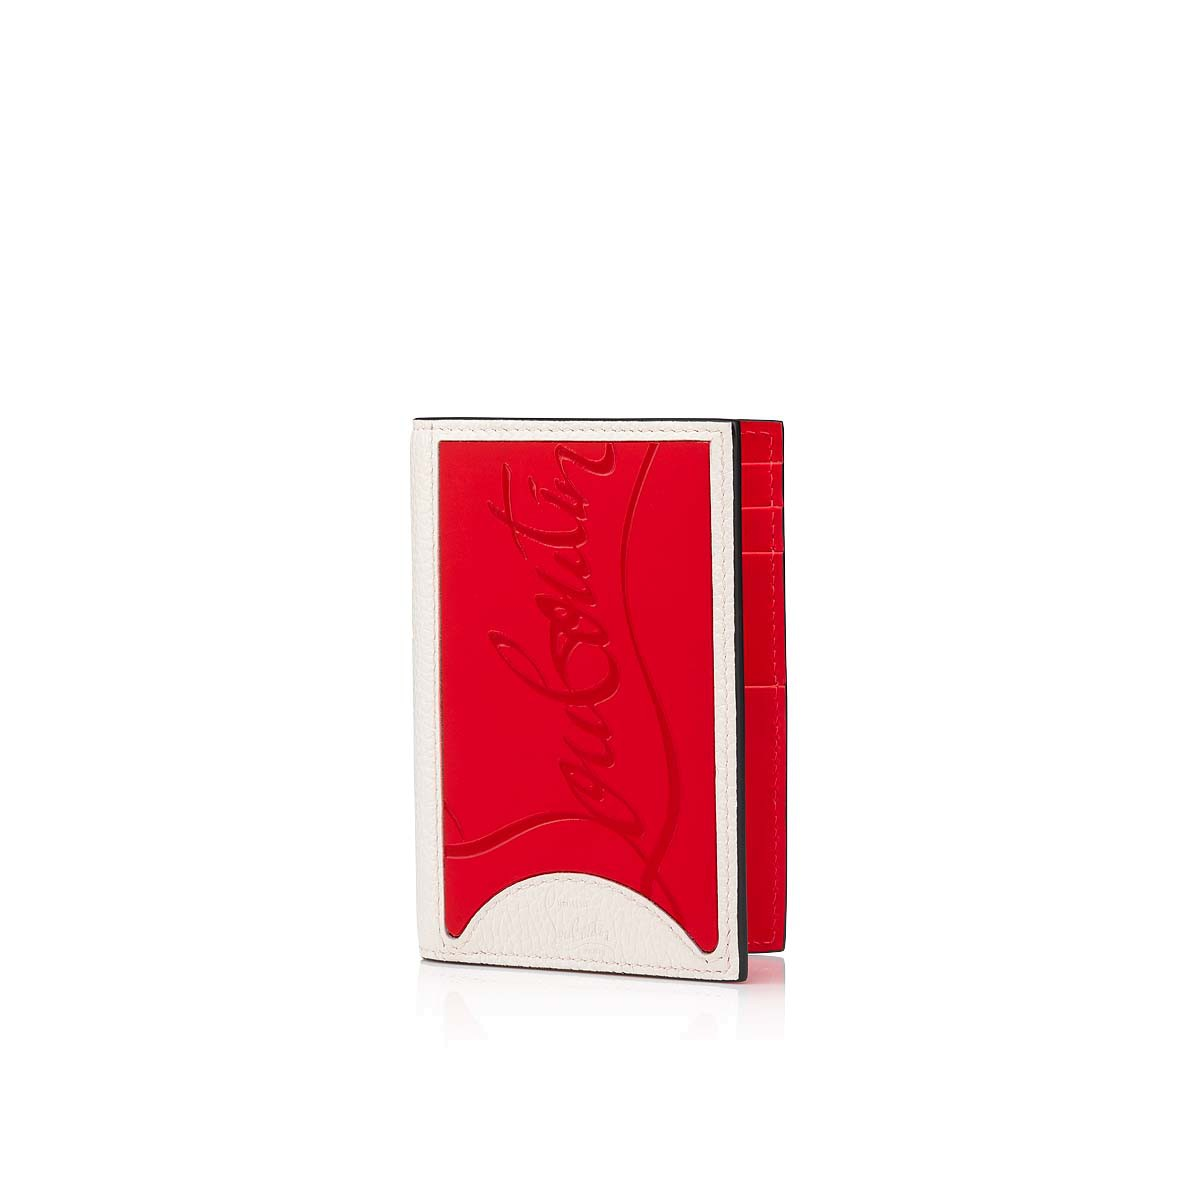 Petite Maroquinerie - M Sifnos Portefeuille - Christian Louboutin